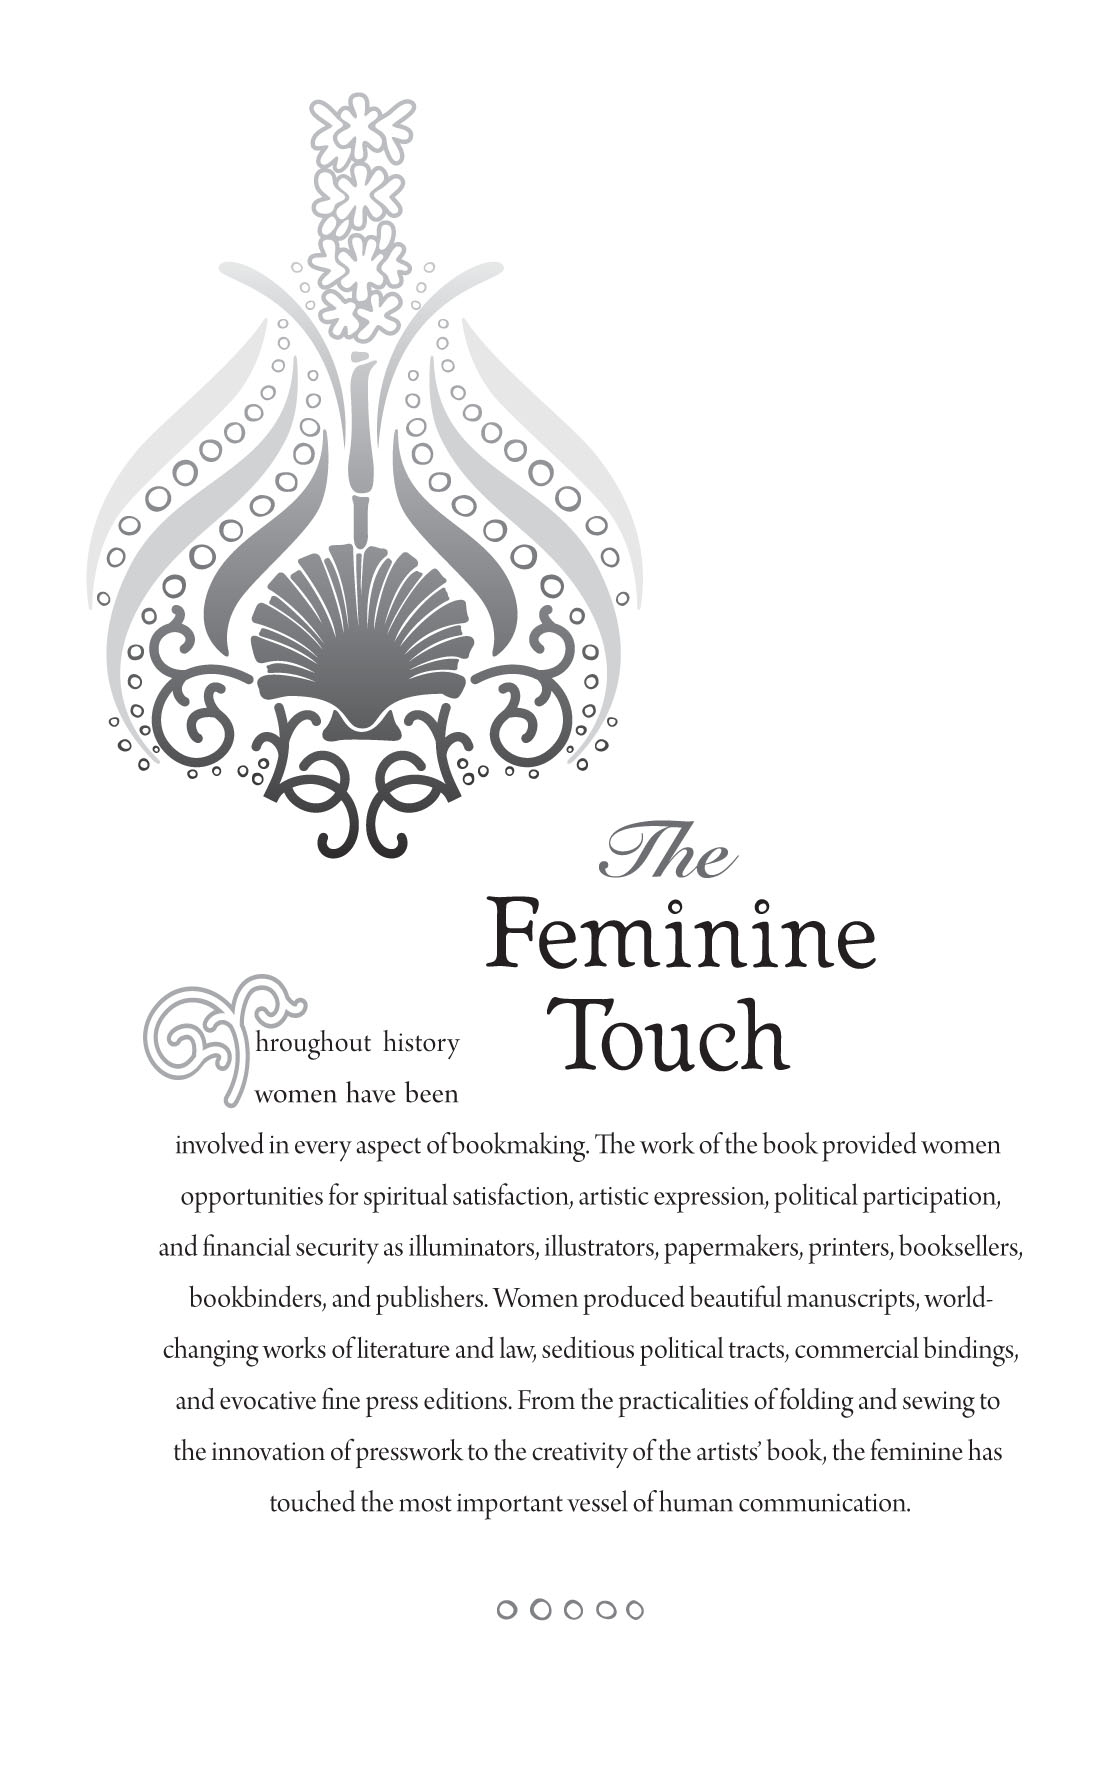 David Wolske, Feminine Touch Exhibition Poster,2009